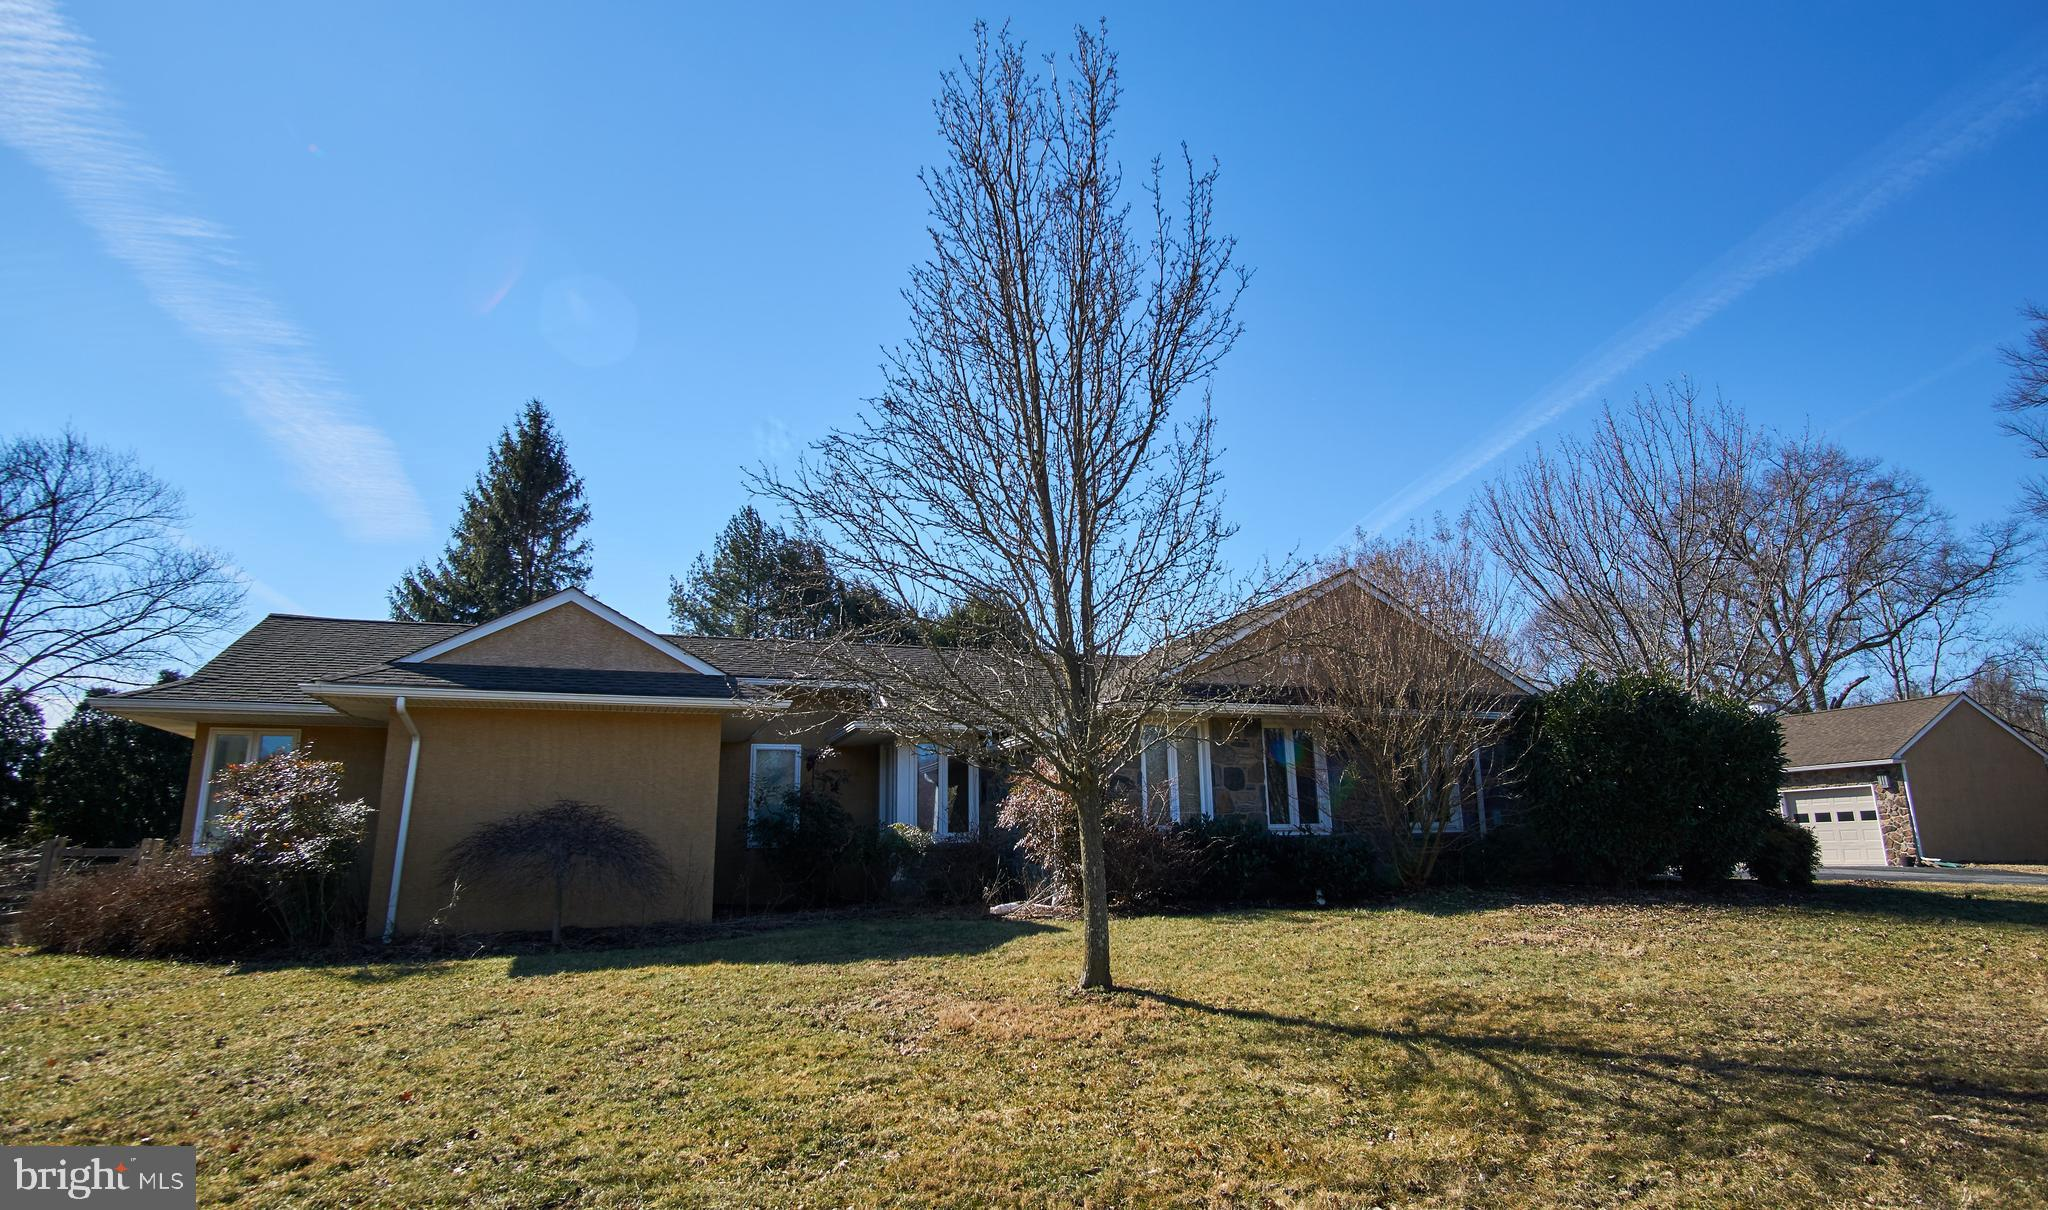 621 WEBB ROAD, CHADDS FORD, PA 19317